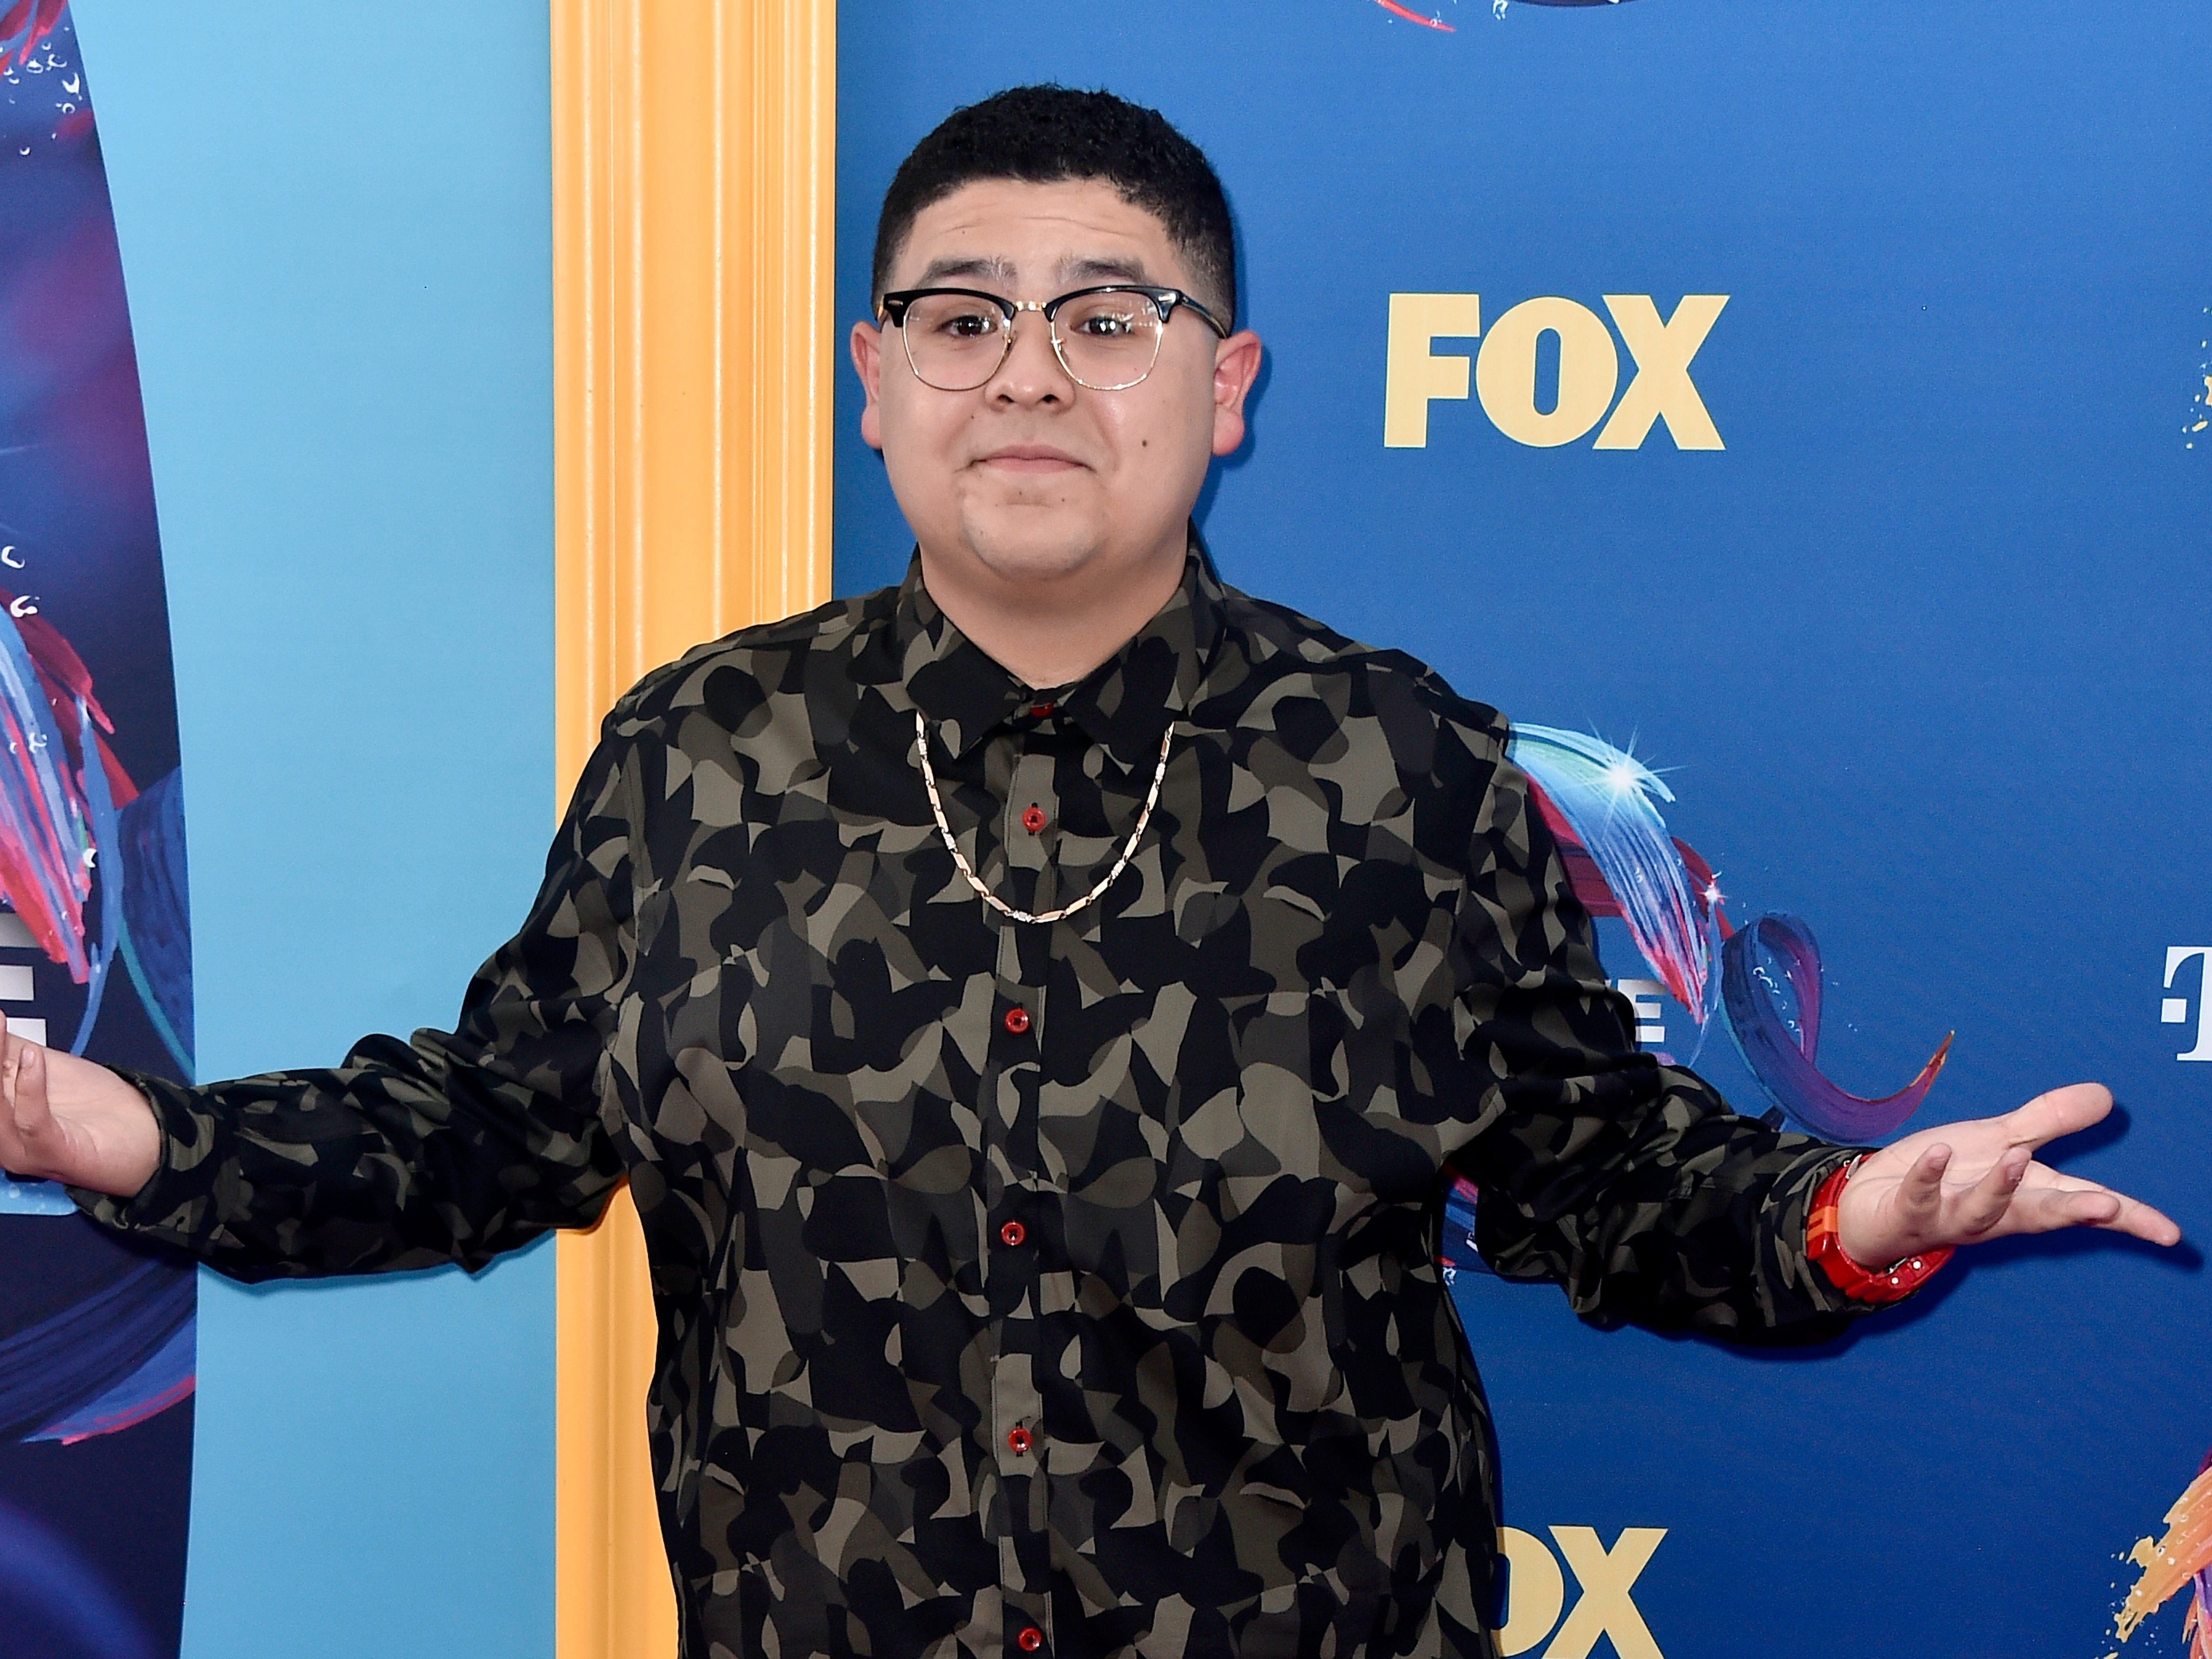 INGLEWOOD, CA - AUGUST 12:  Rico Rodriguez attends FOX's Teen Choice Awards at The Forum on August 12, 2018 in Inglewood, California.  (Photo by Frazer Harrison/Getty Images) ORG XMIT: 775199256 ORIG FILE ID: 1015795304